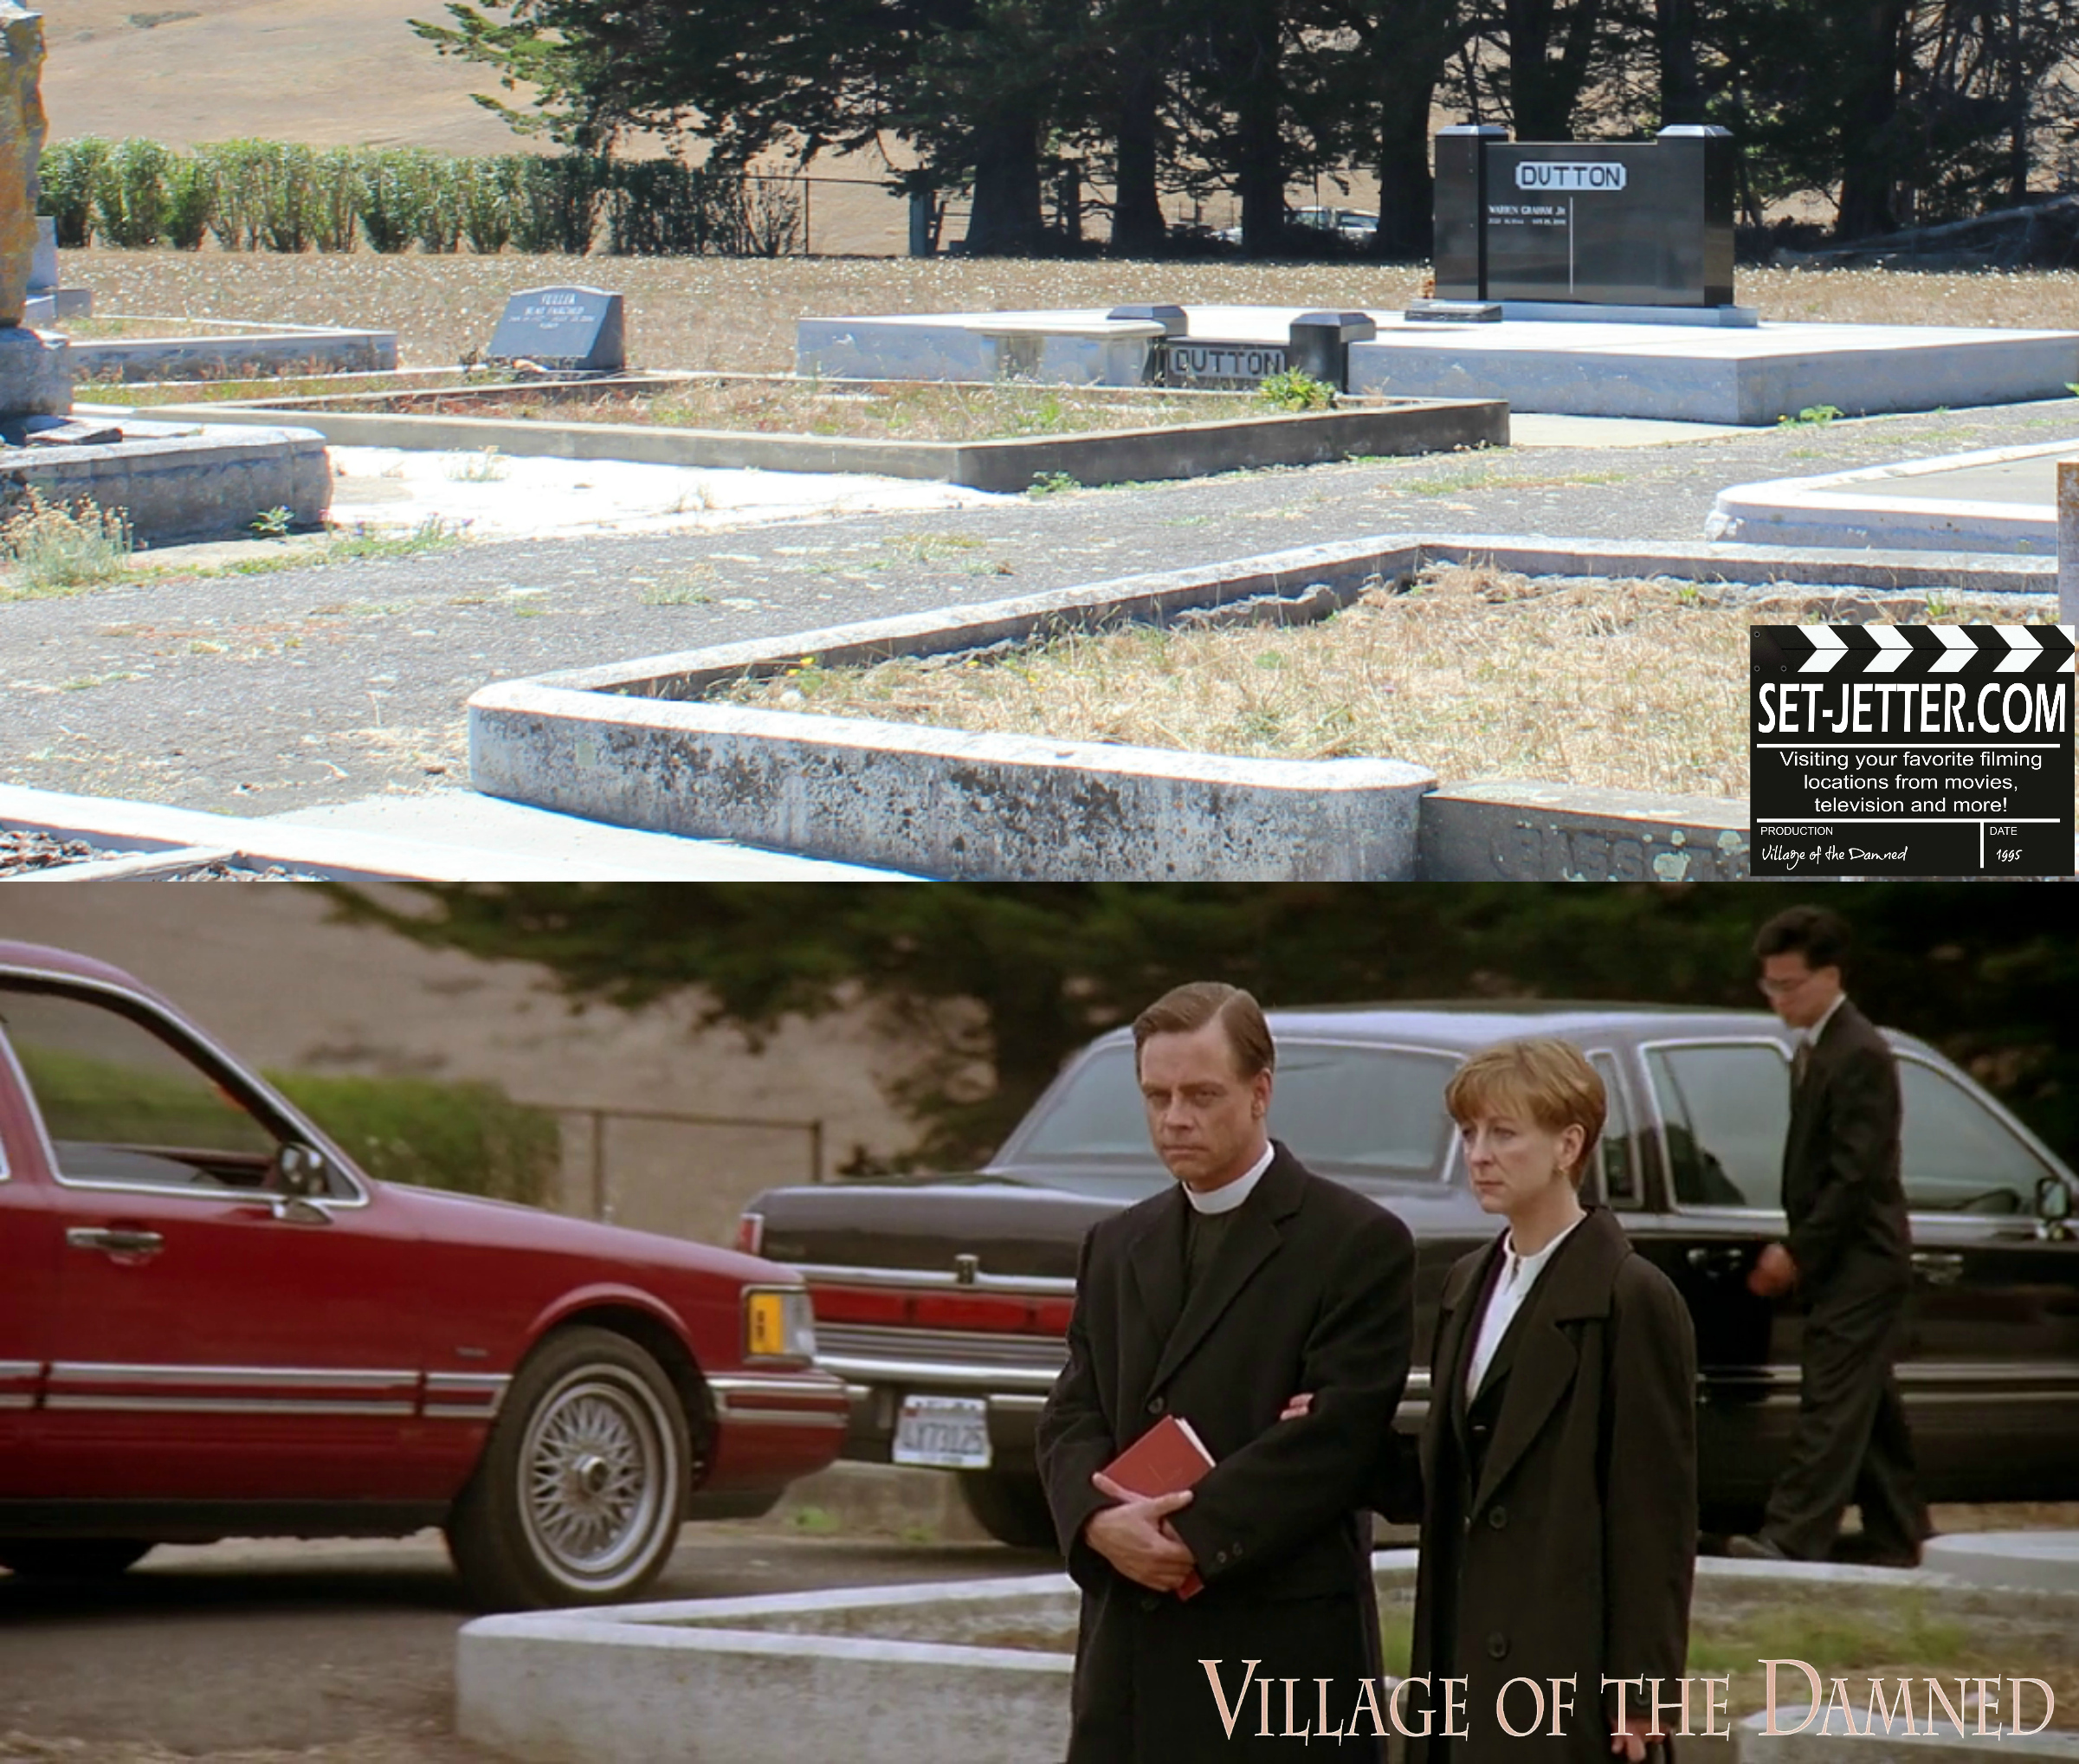 Village of the Damned comparison 83.jpg